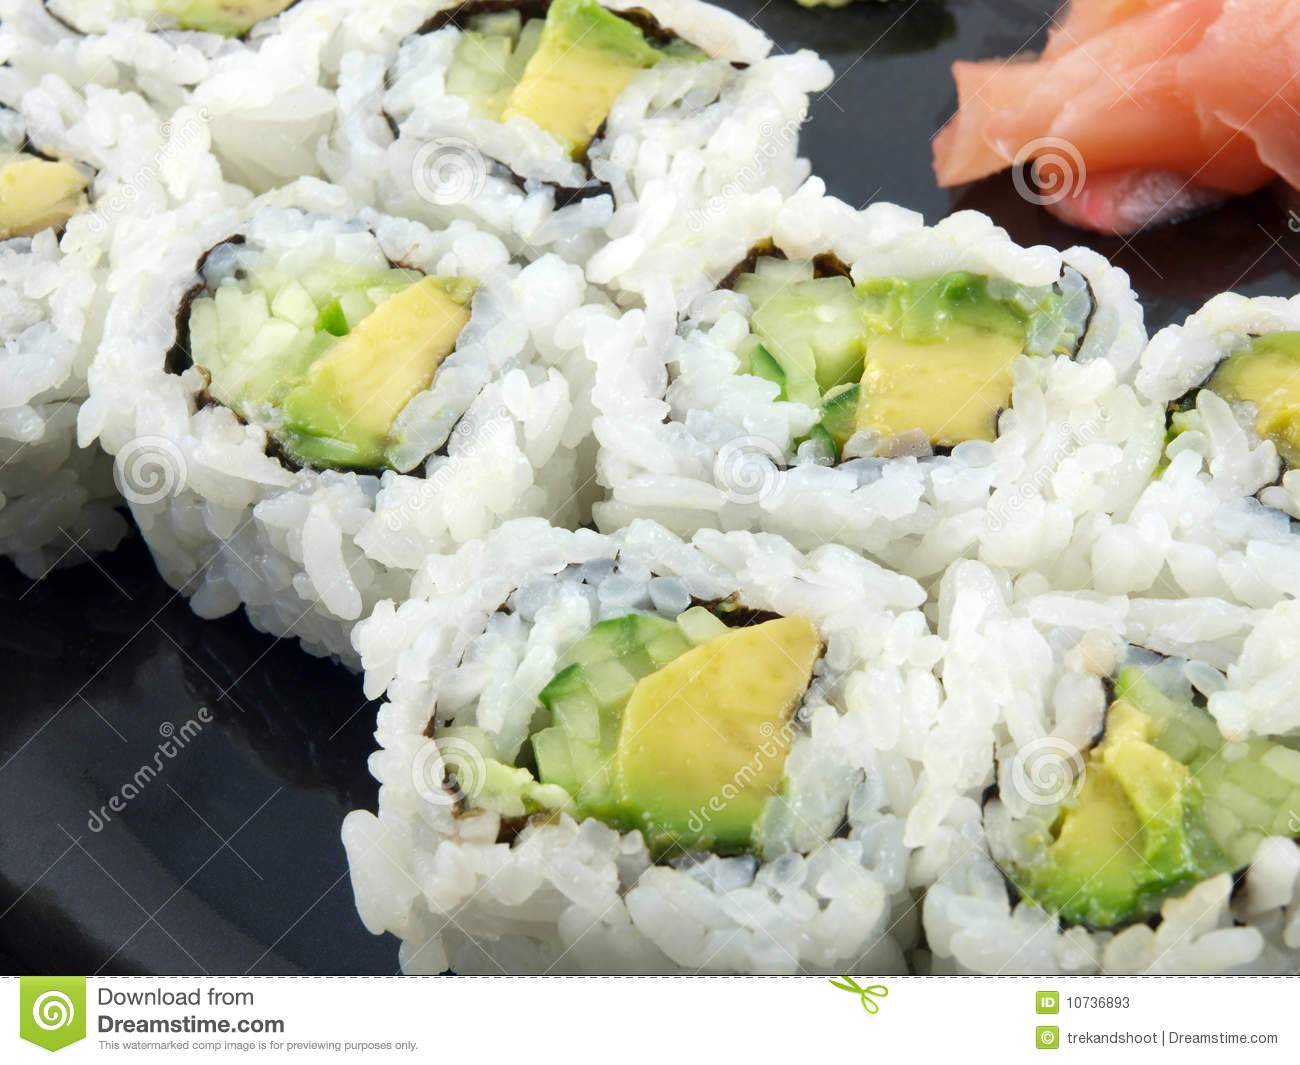 Avocado and Cucumber Sushi Roll with ginger. Vegetarian Japanese food.